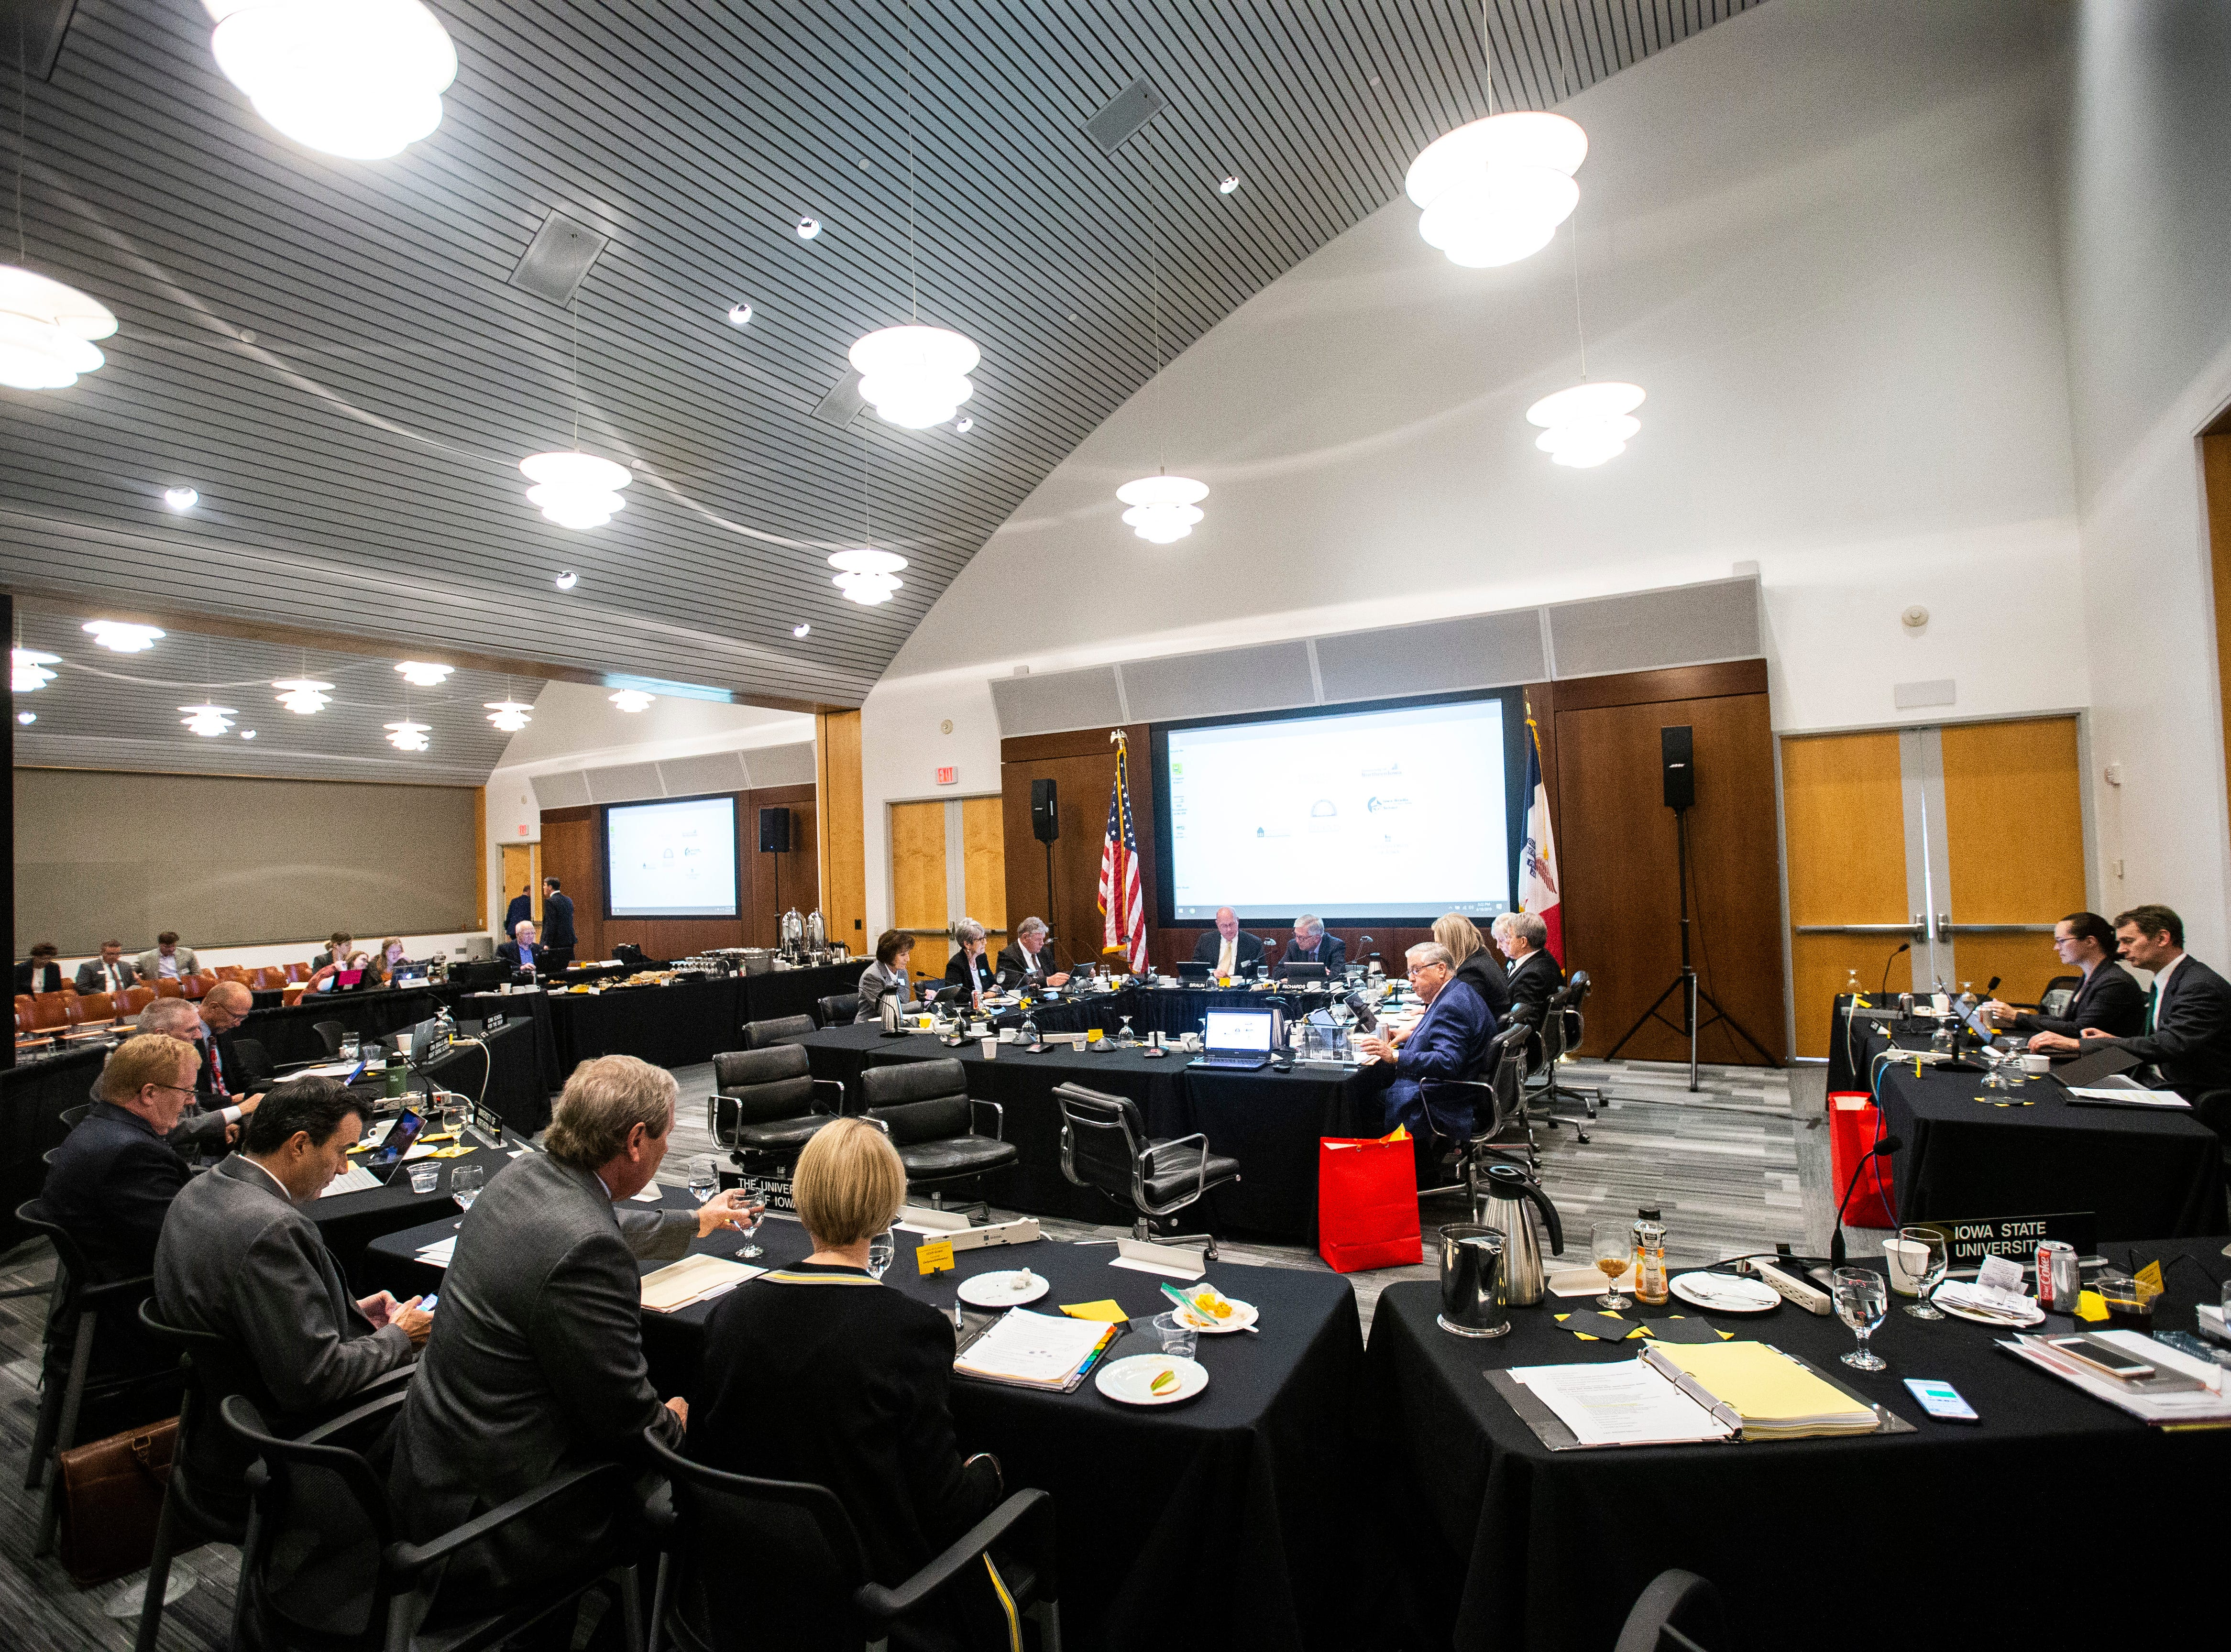 Members find their seats during an Iowa Board of Regents meeting, Thursday, April 18, 2019, in the Levitt Center on the University of Iowa campus in Iowa City, Iowa.